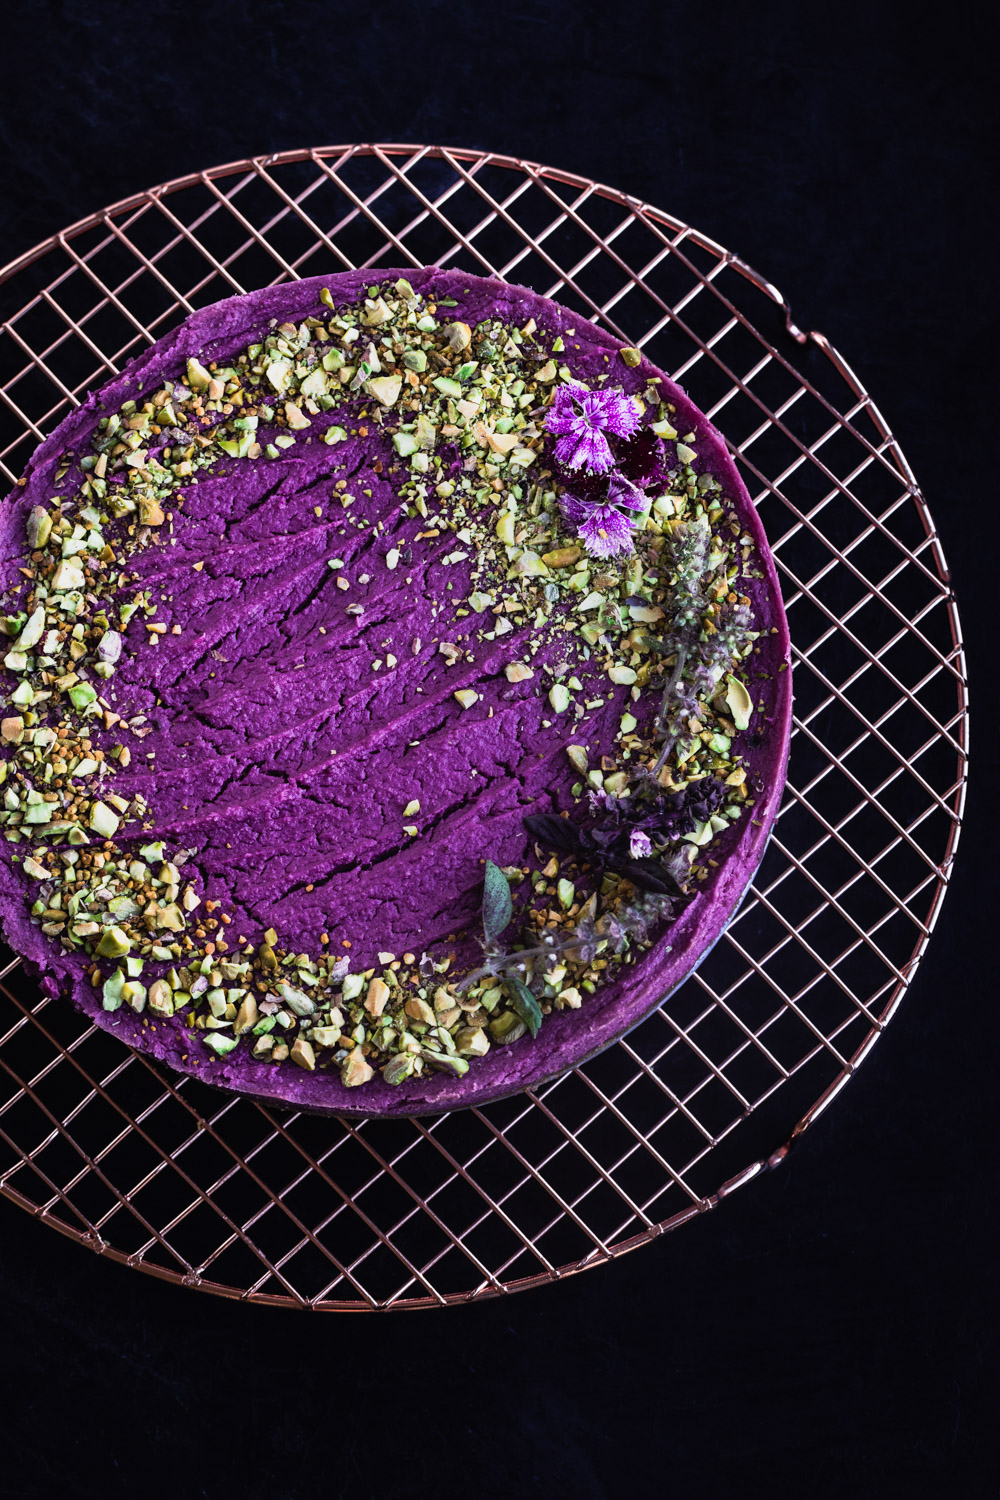 Purple sweet potato cheesecake topped with pistachios and edible flowers.